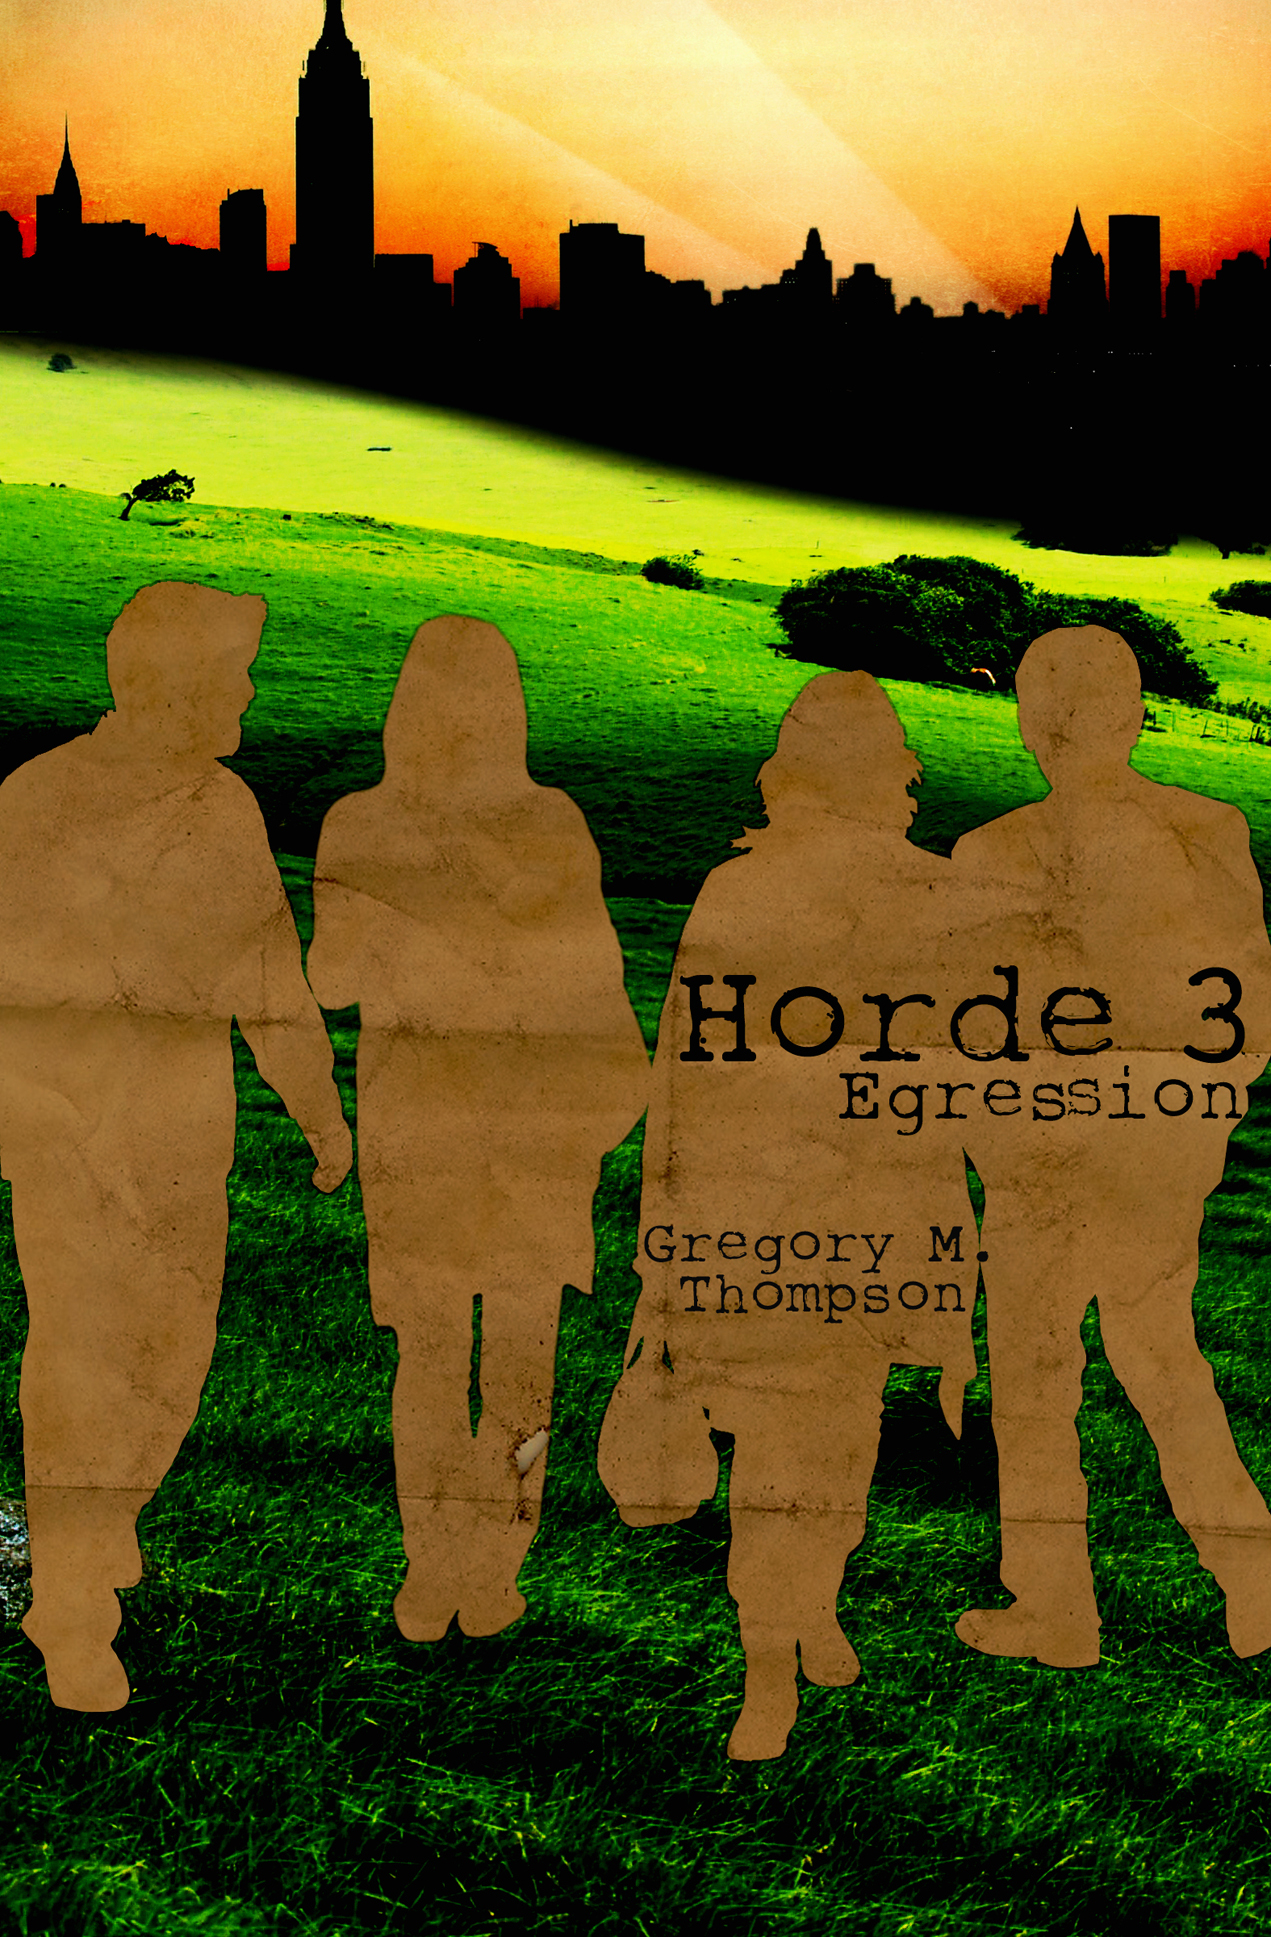 Horde 3: Egression Cover